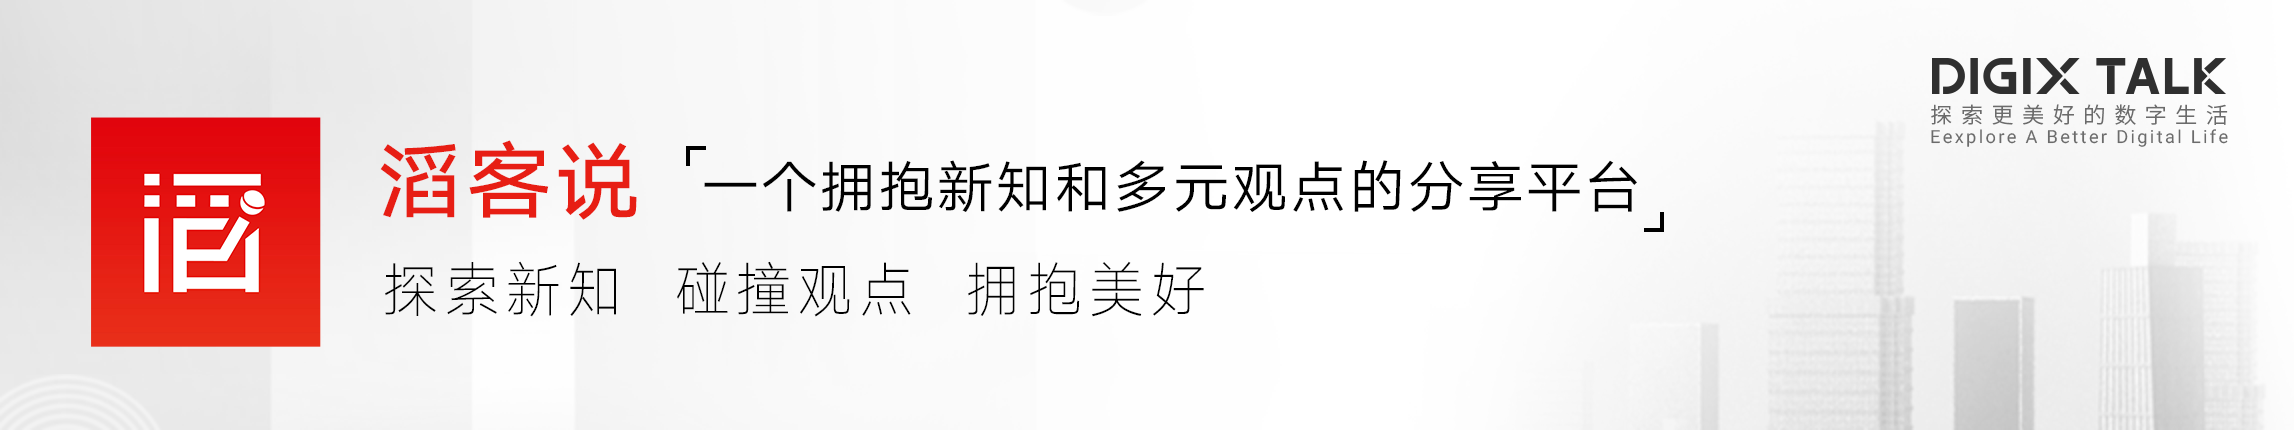 3ms头图.png